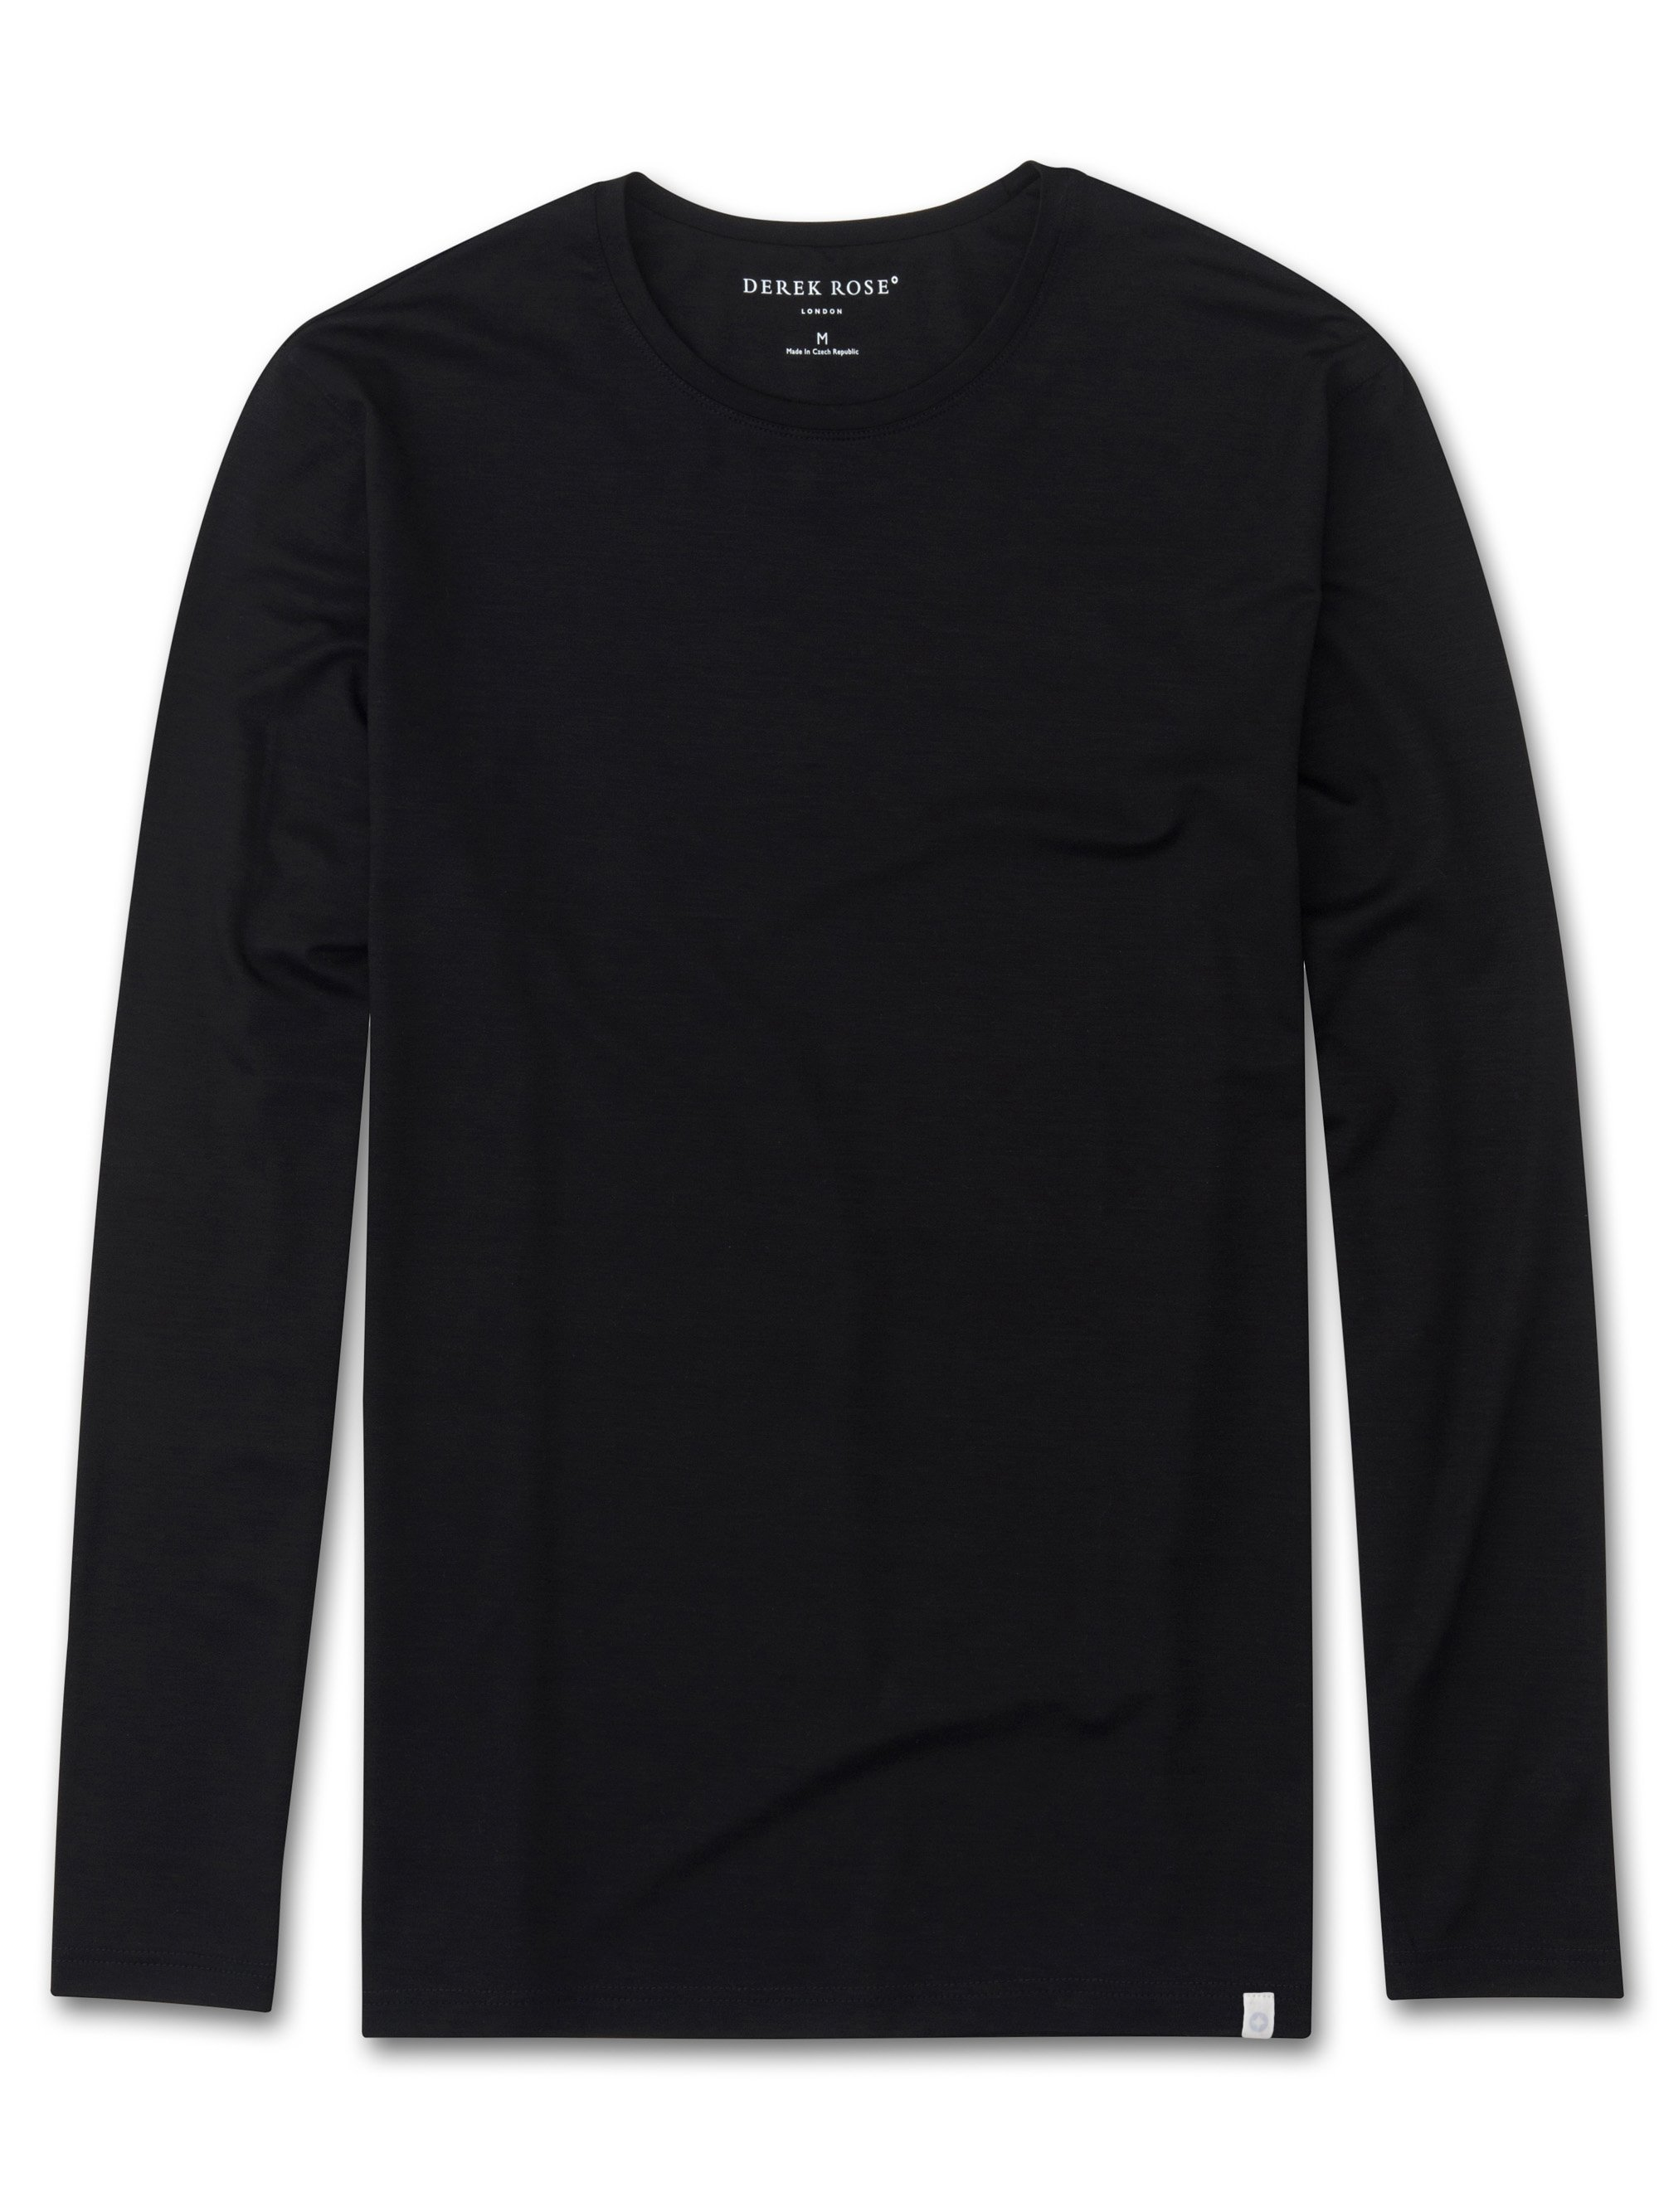 Men's Long Sleeve T-Shirt Basel Micro Modal Stretch Black